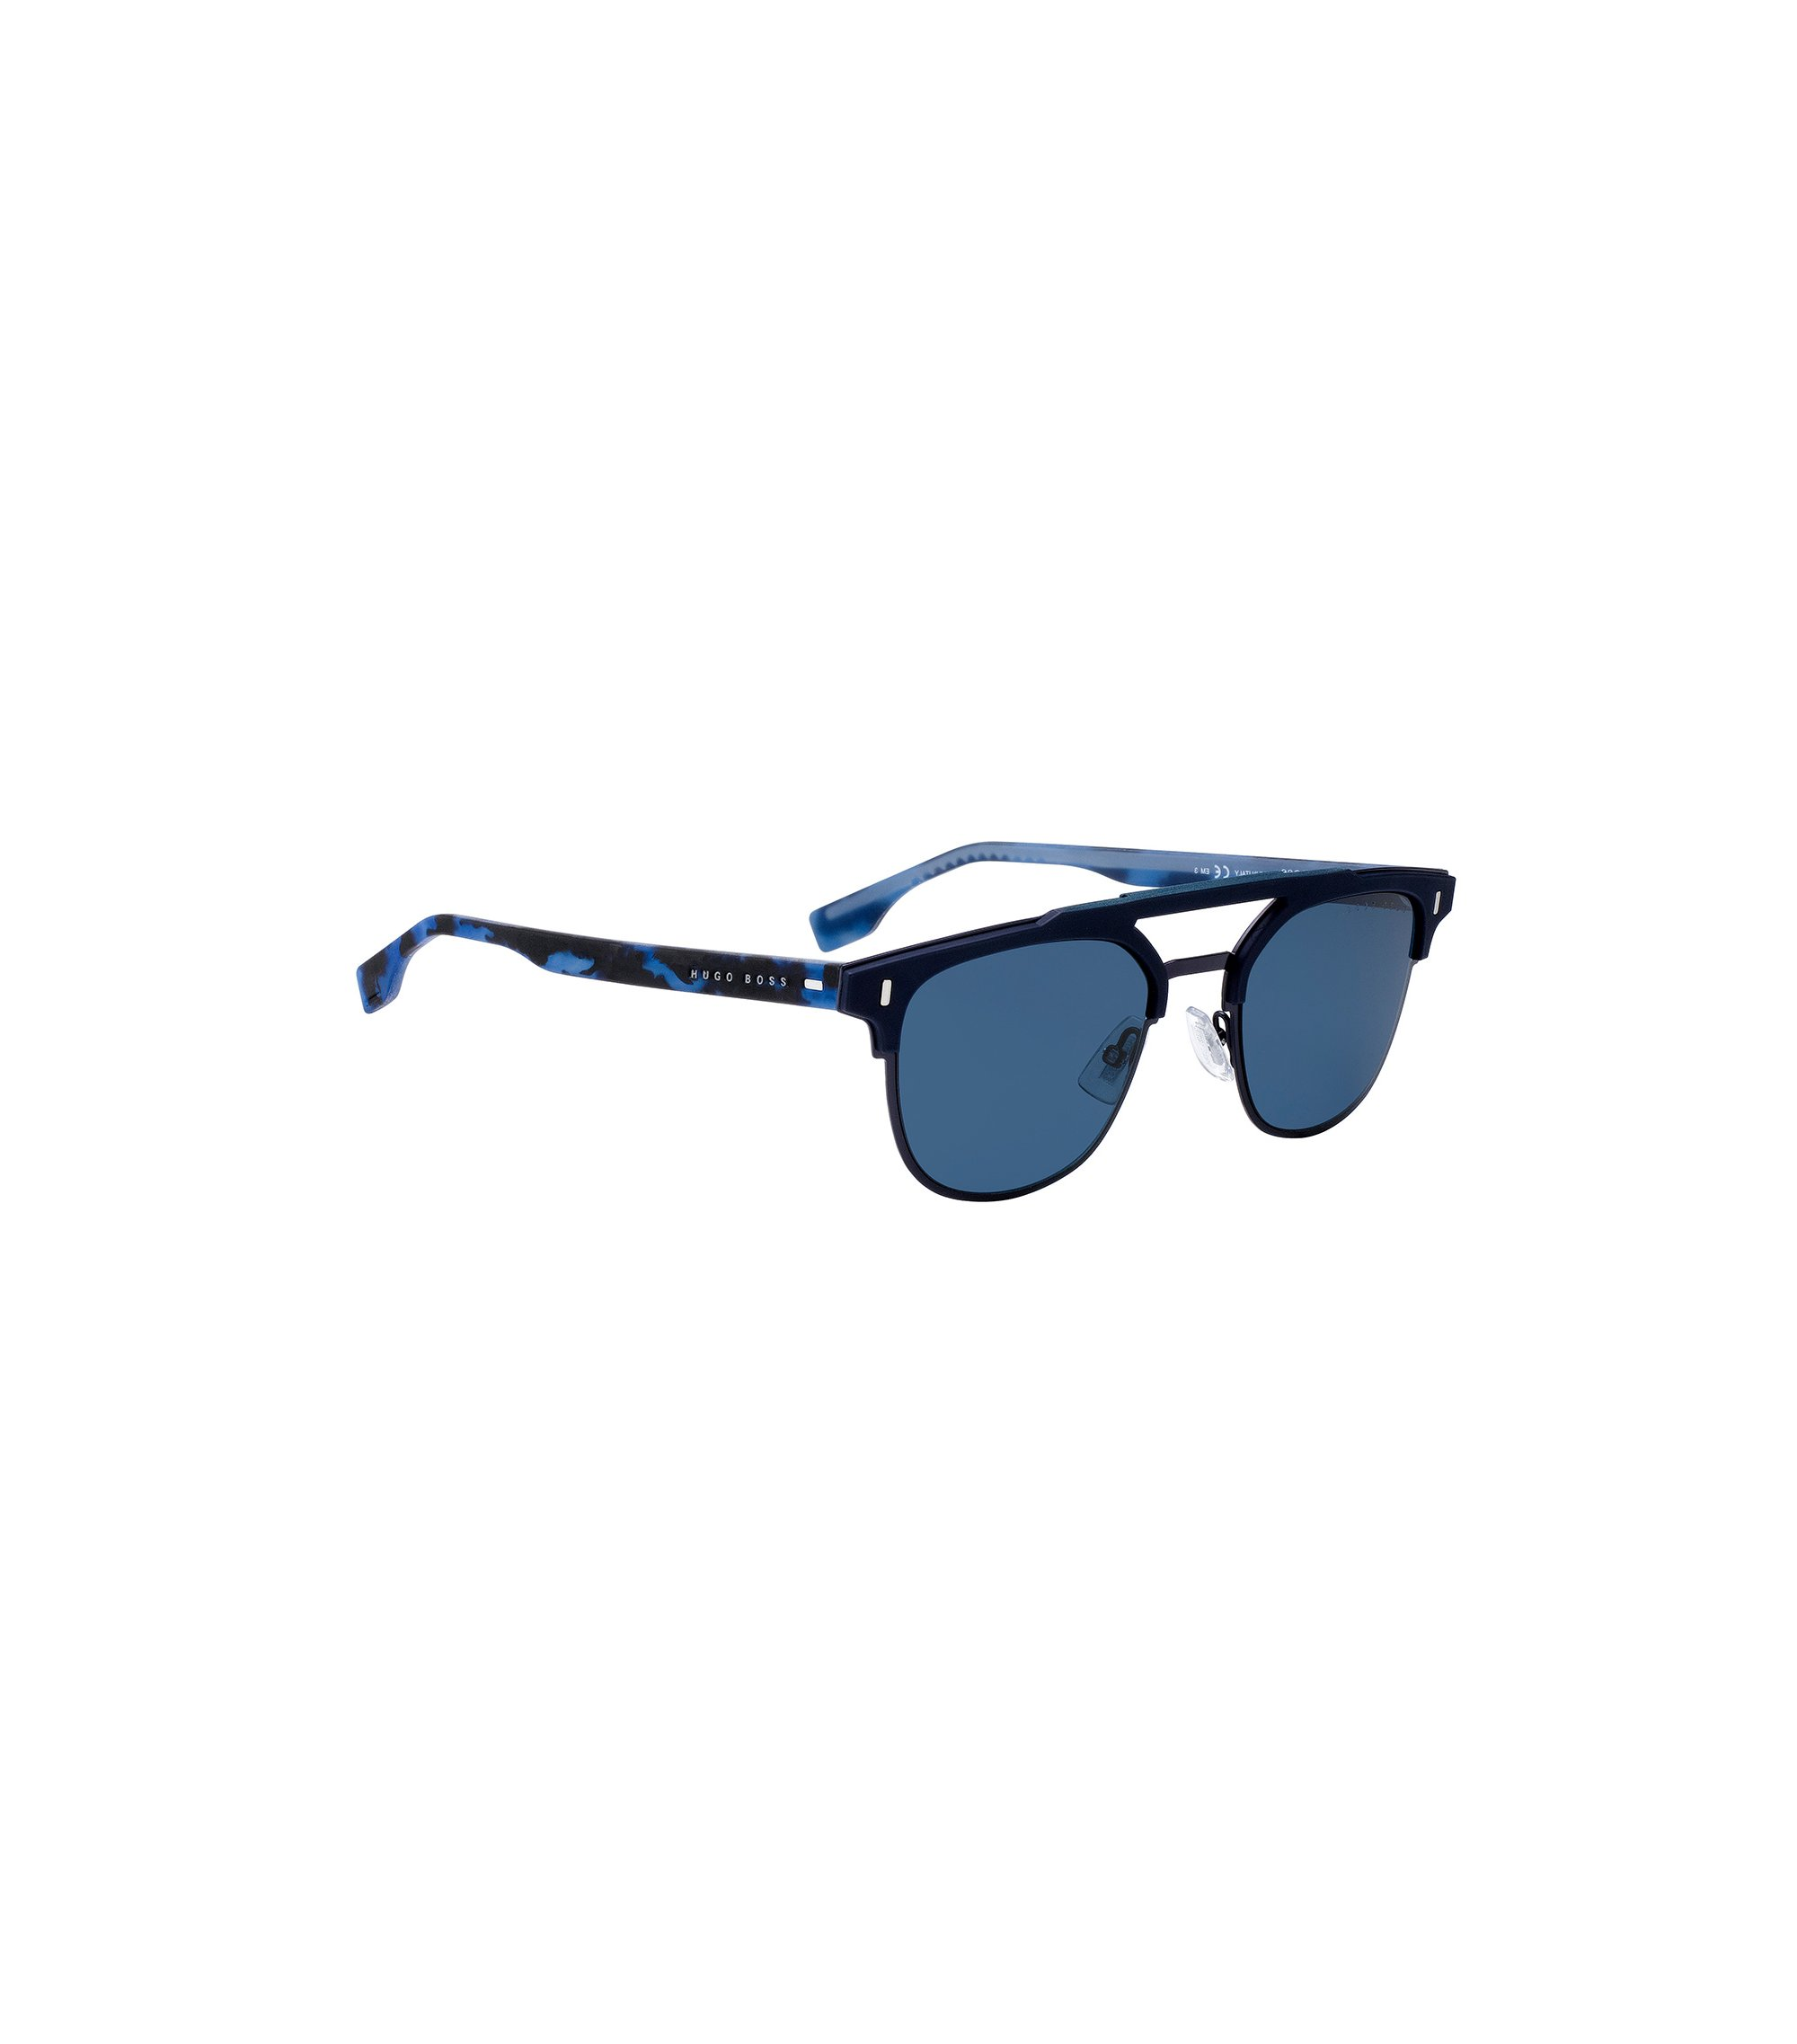 Matt-blue sunglasses with rubberised Havana temples, Assorted-Pre-Pack